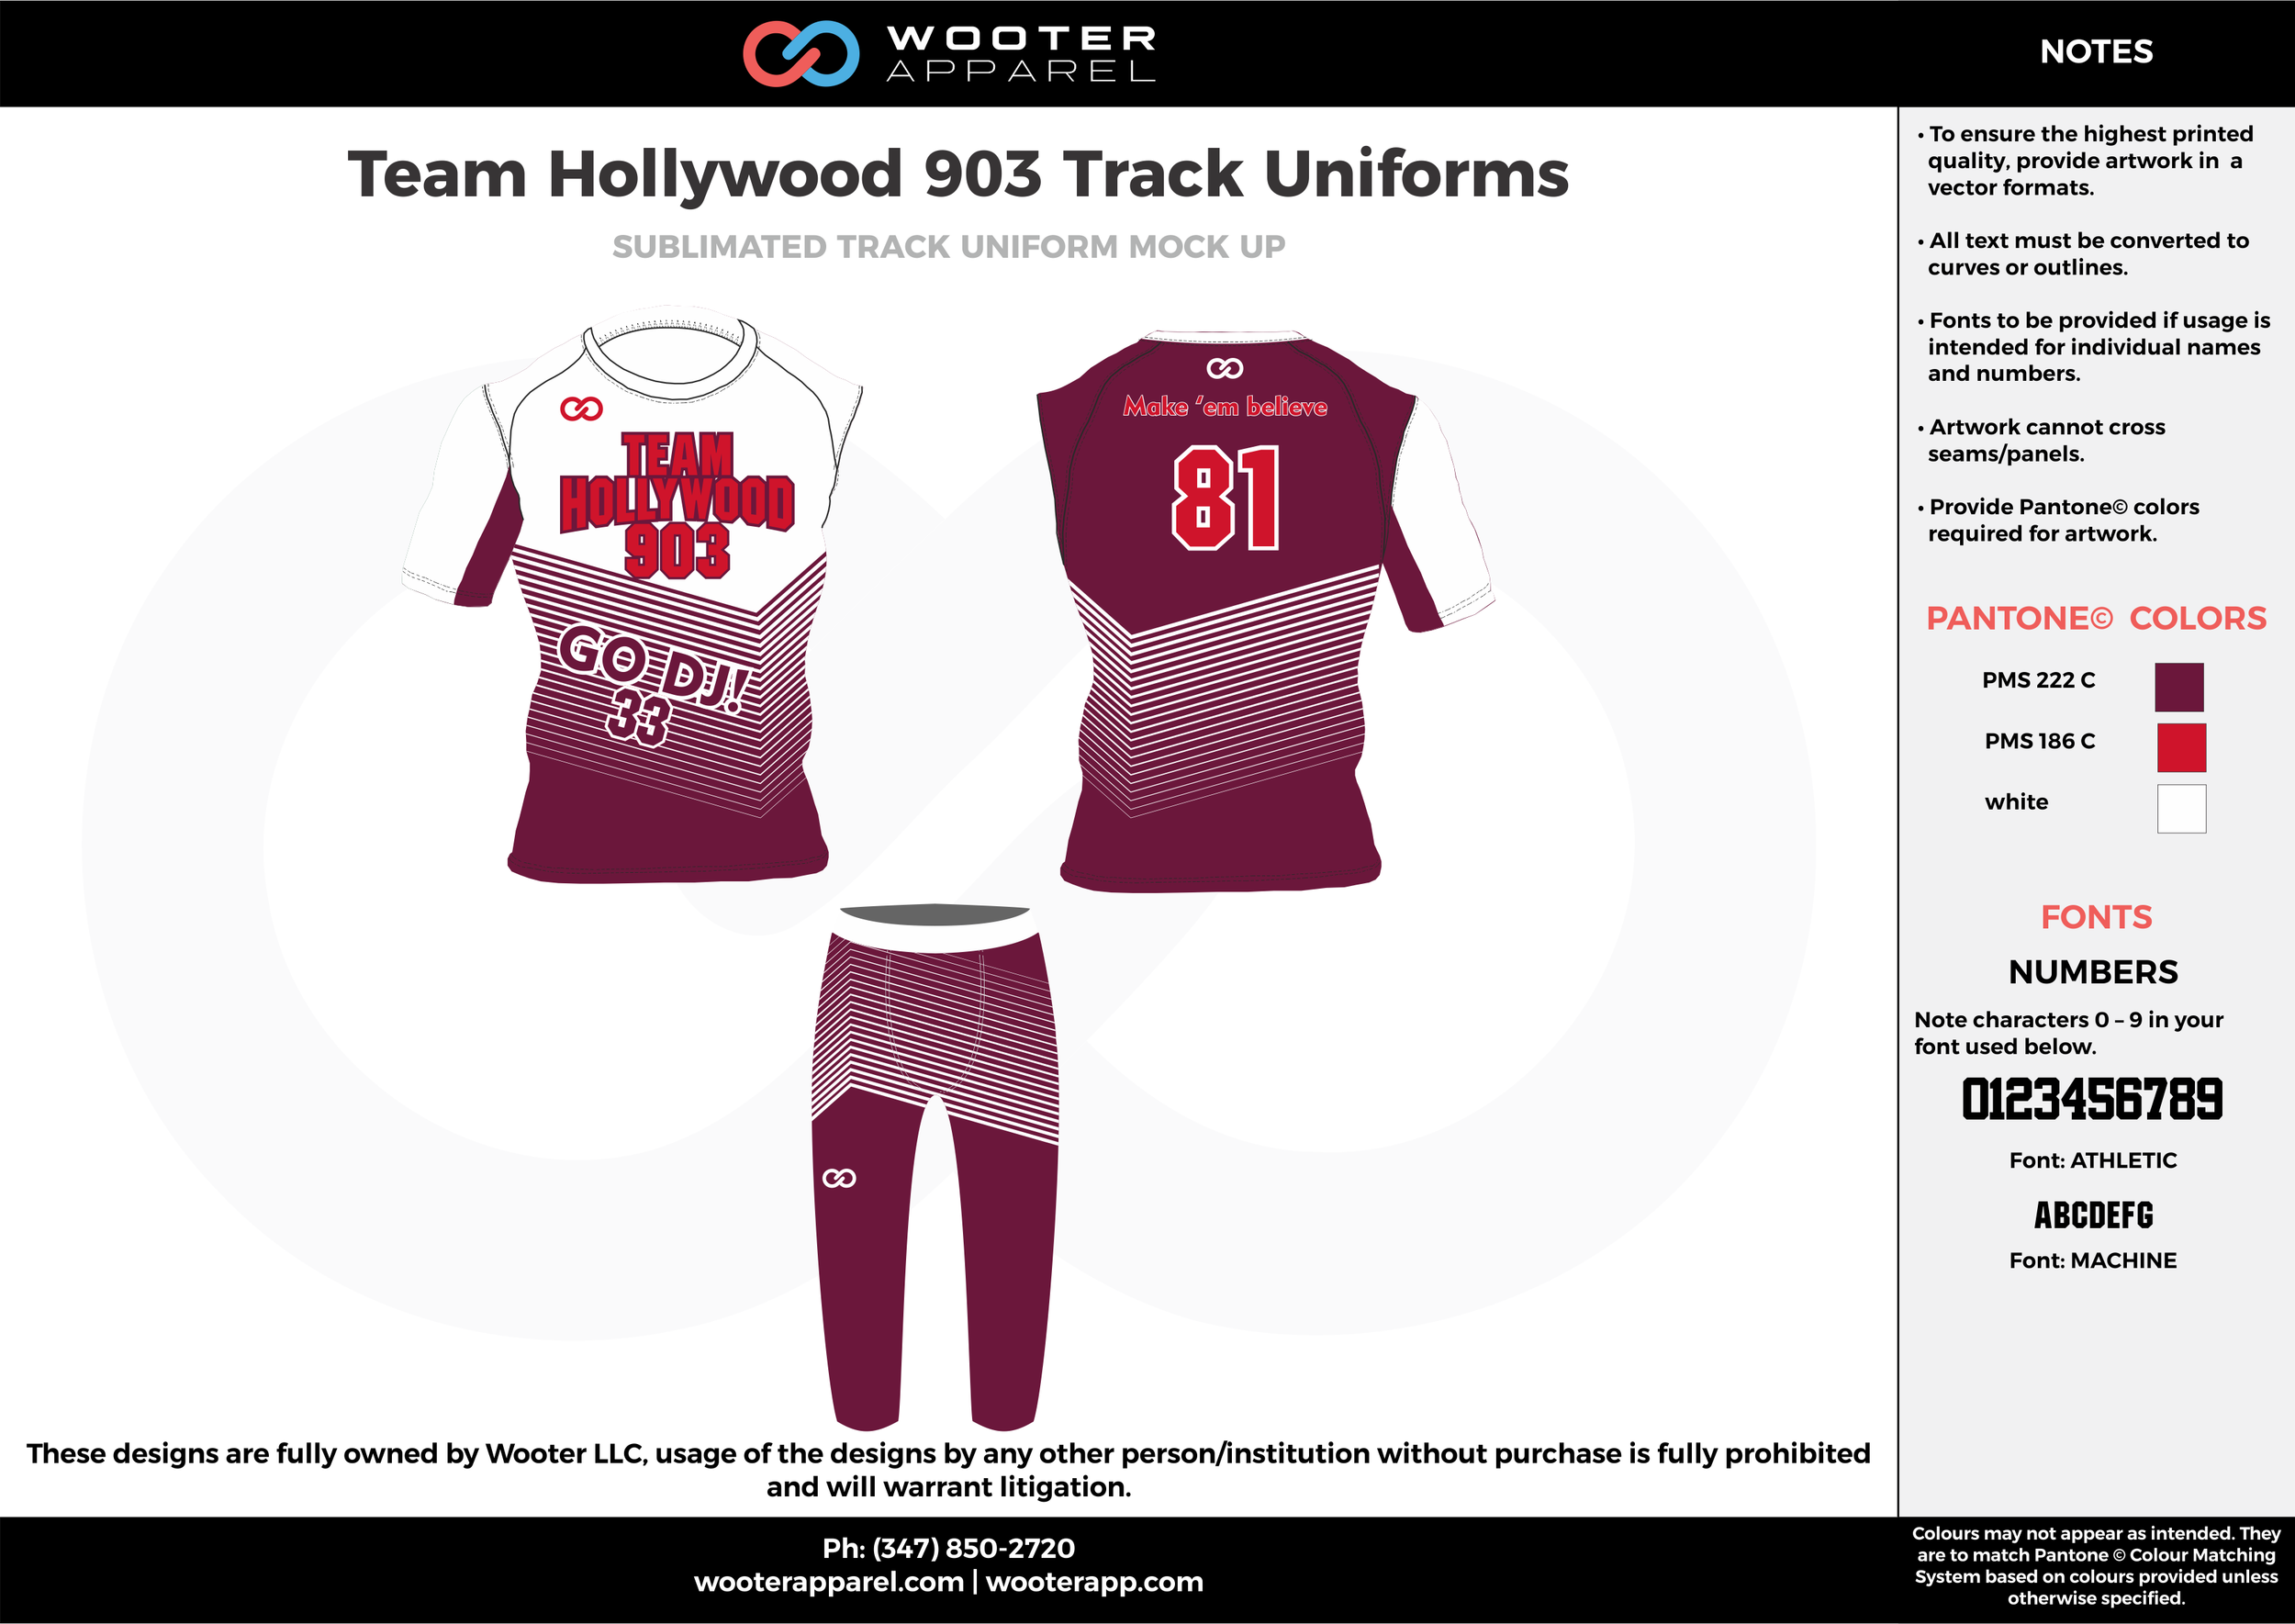 Team Hollywood 903 Track Uniforms Maroon Red and white Sublimated Compression Track Uniforms Shirts and pants